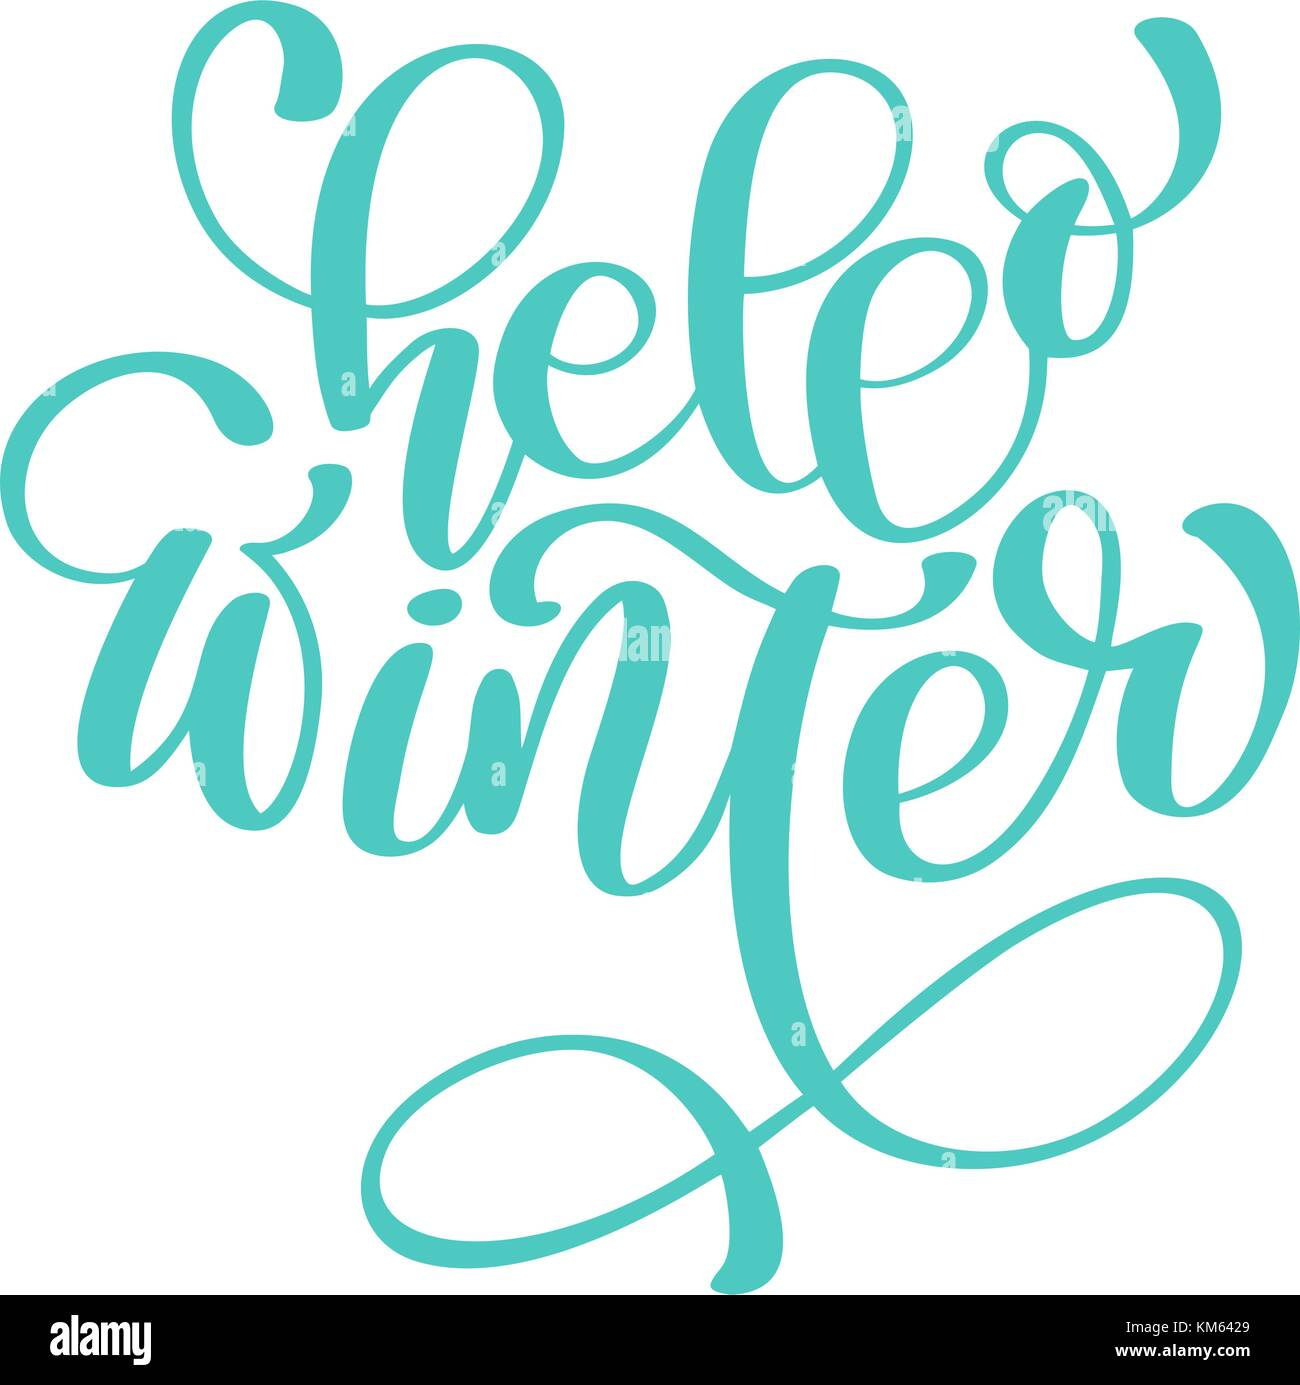 Calligraphy hello winter merry christmas card with template for template for greetings congratulations housewarming posters invitations photo overlays vector illustration kristyandbryce Images